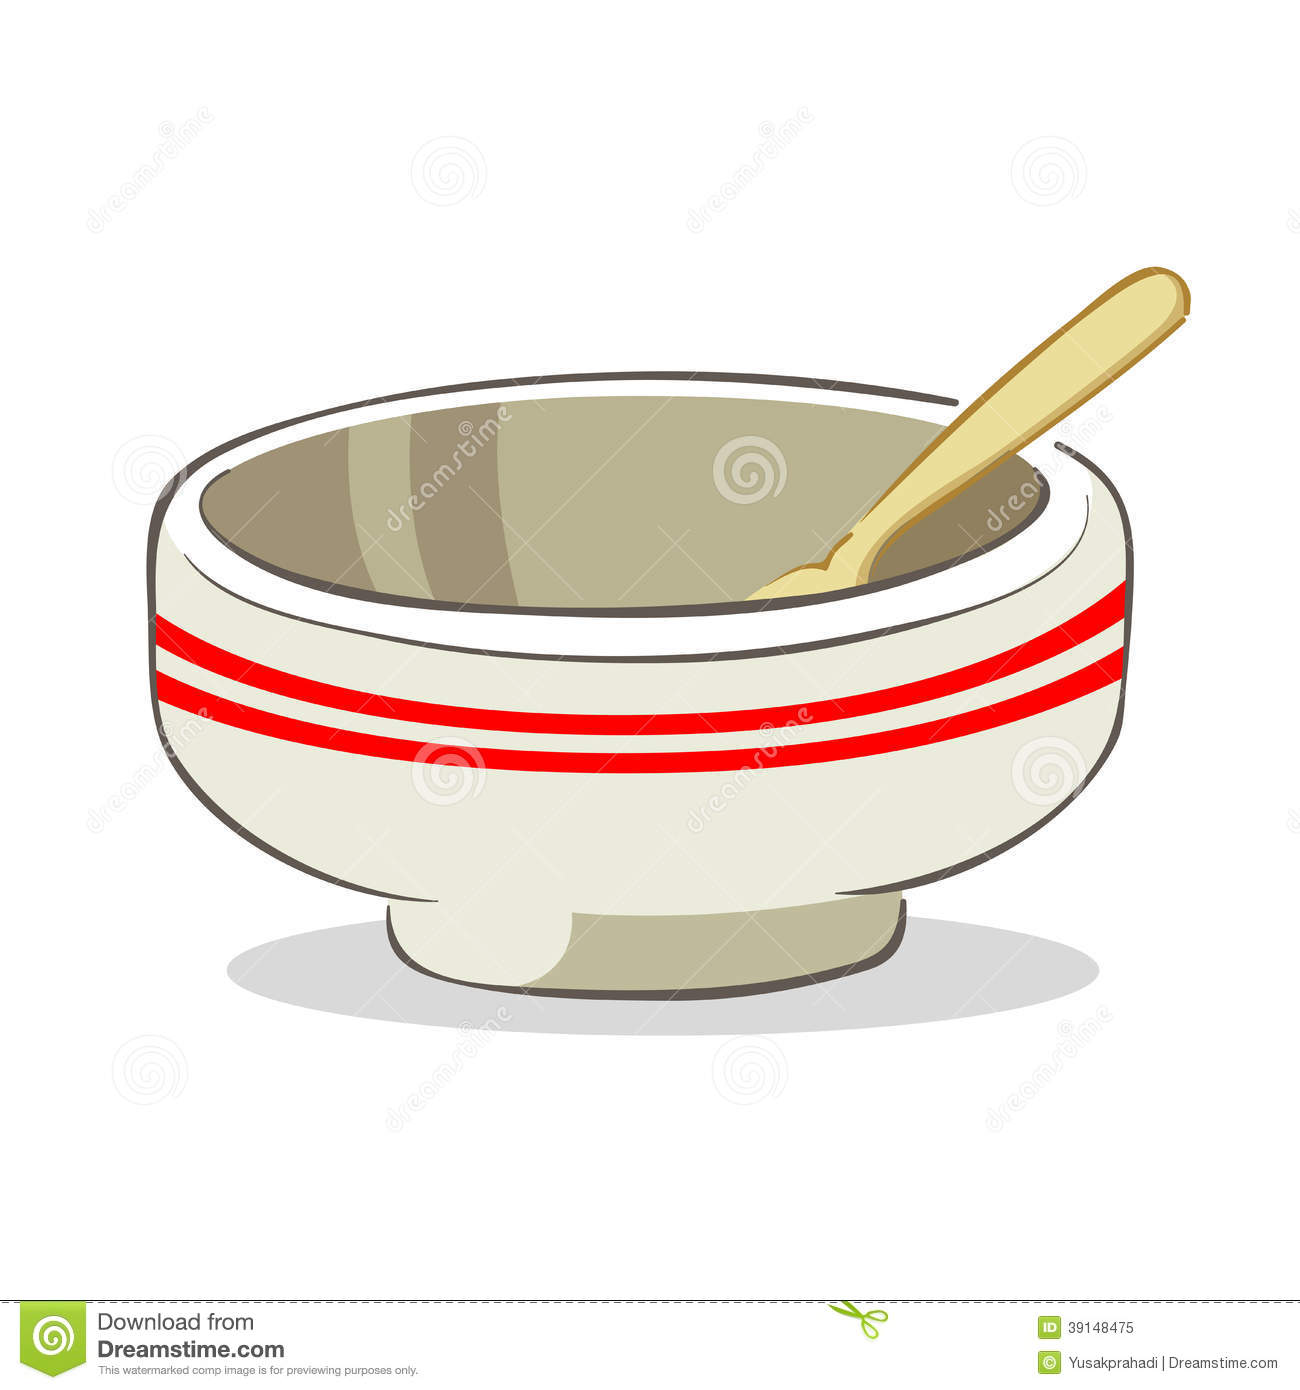 Cereal clipart bowl spoon. Mixing drawing at getdrawings